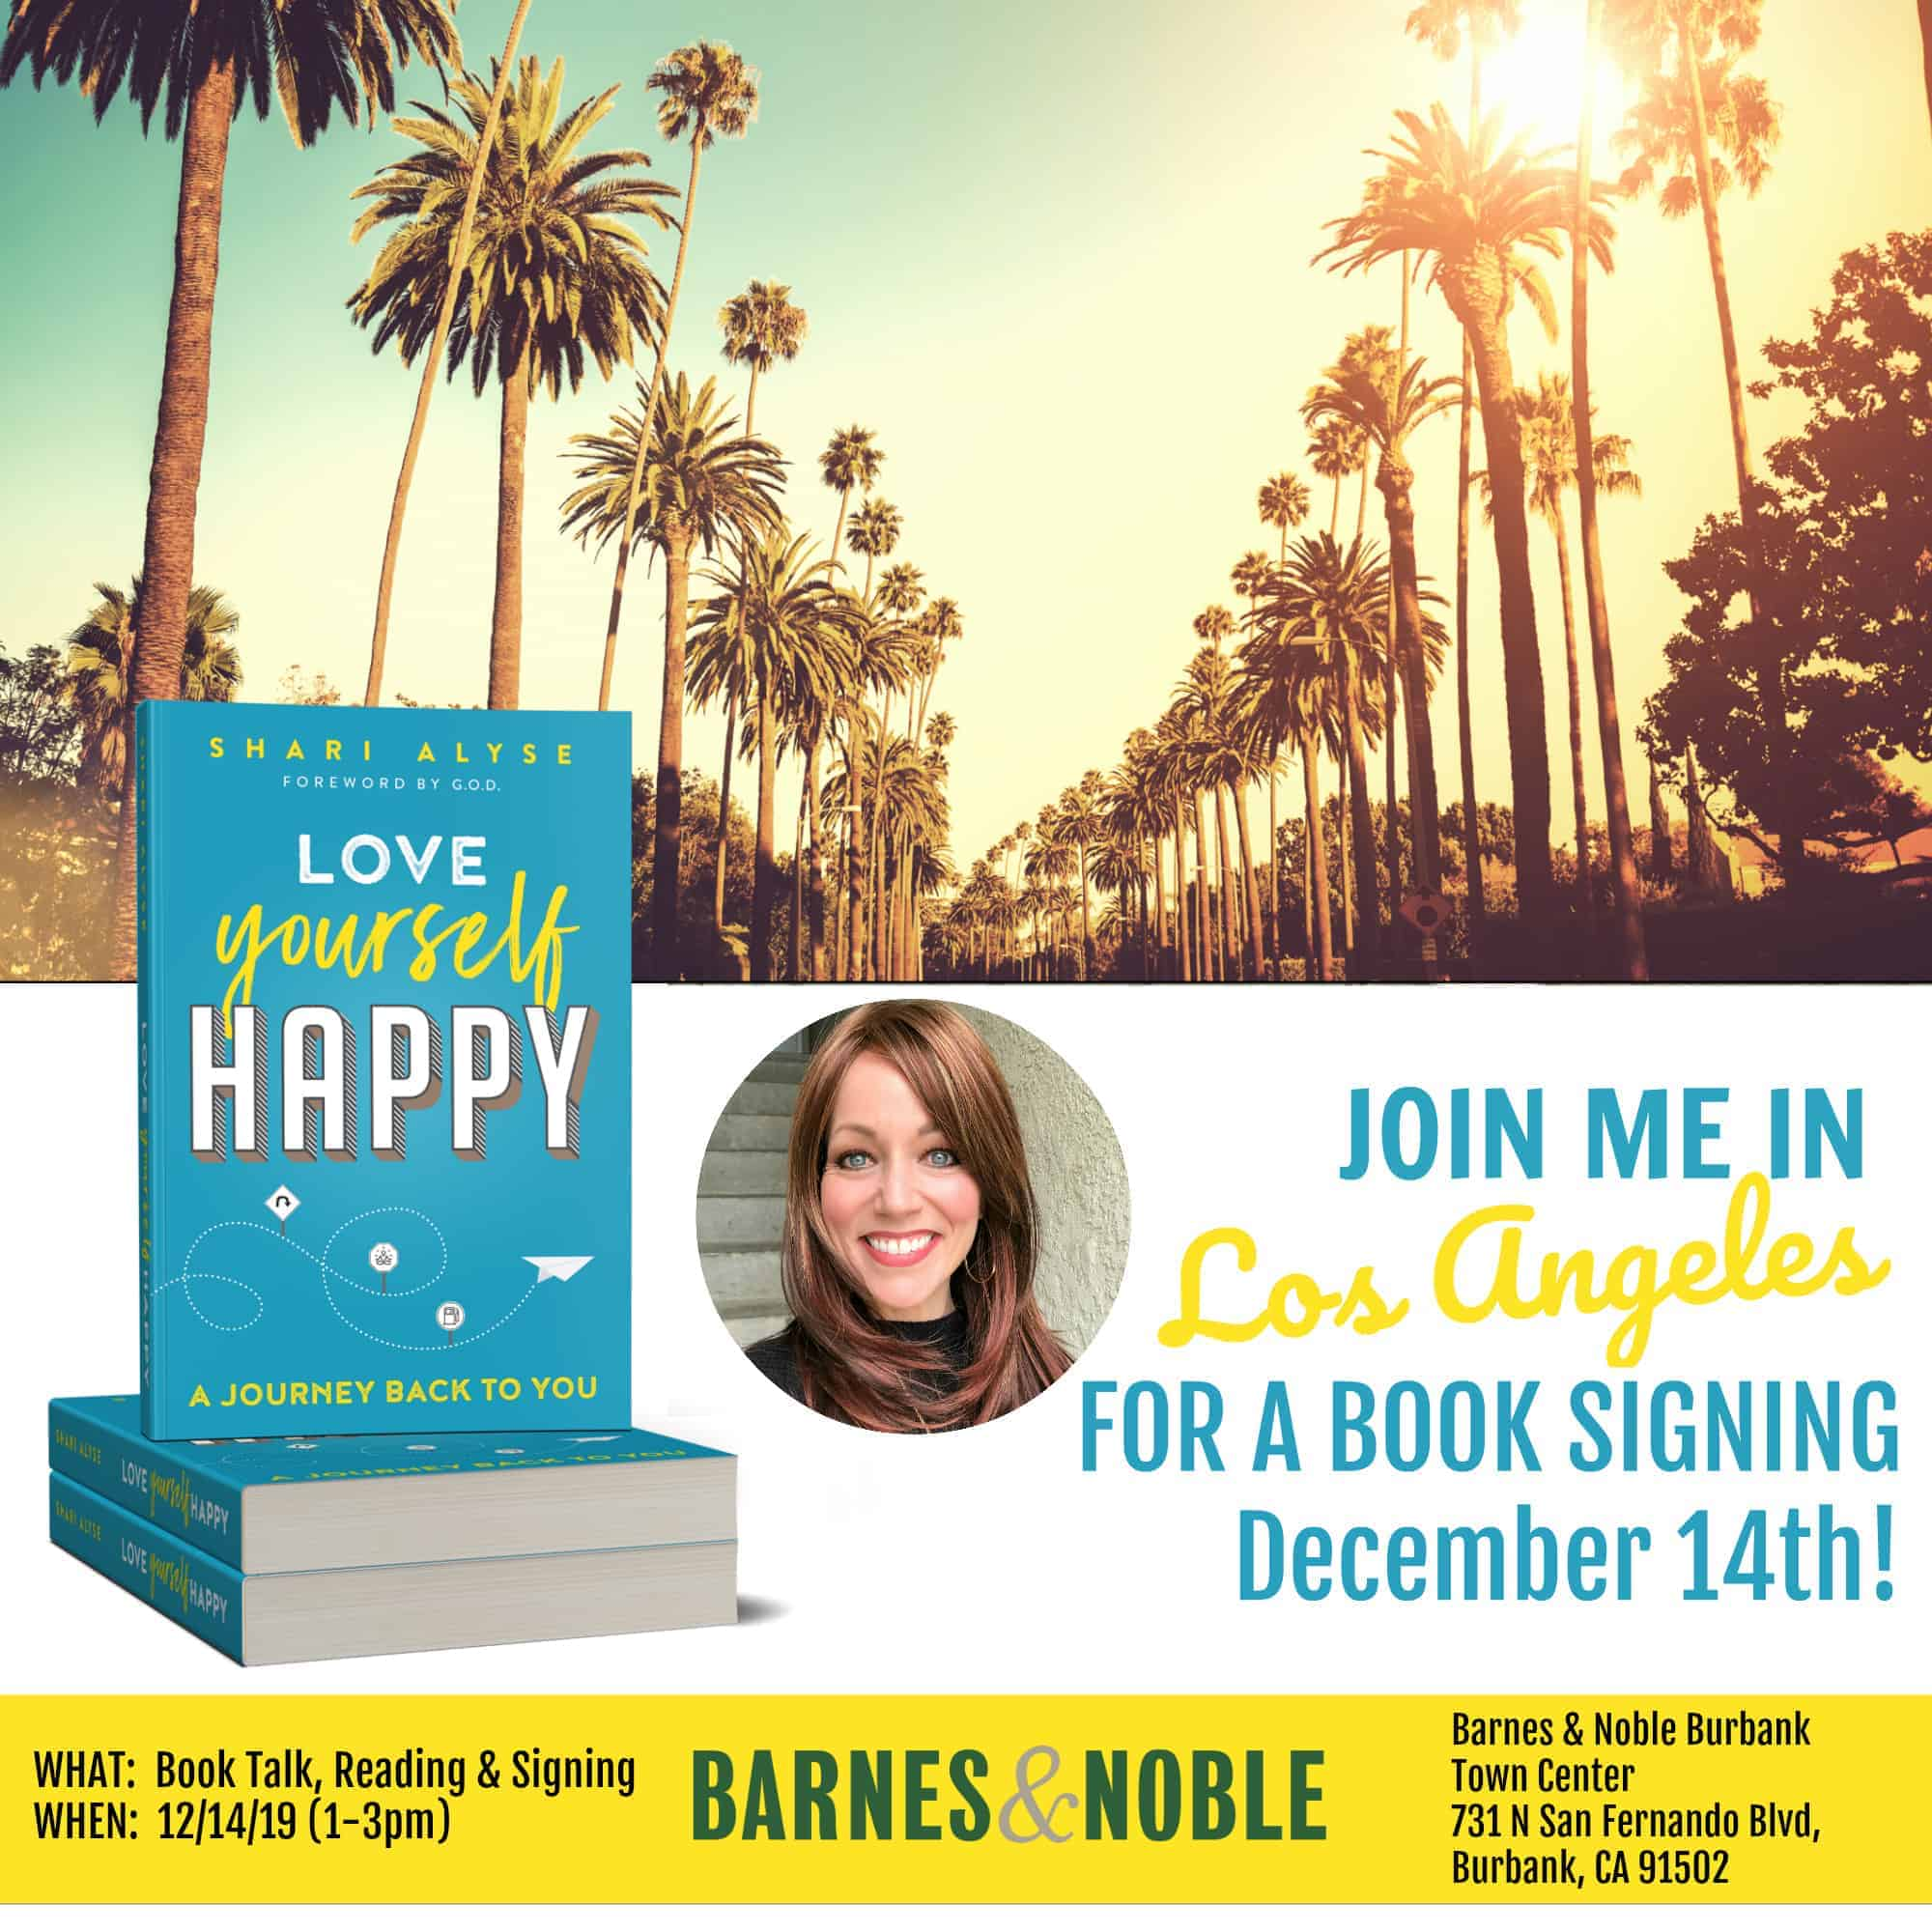 If you're in the Los Angeles vicinity, stop by Barnes & Noble this Saturday 12/14 from 1-3